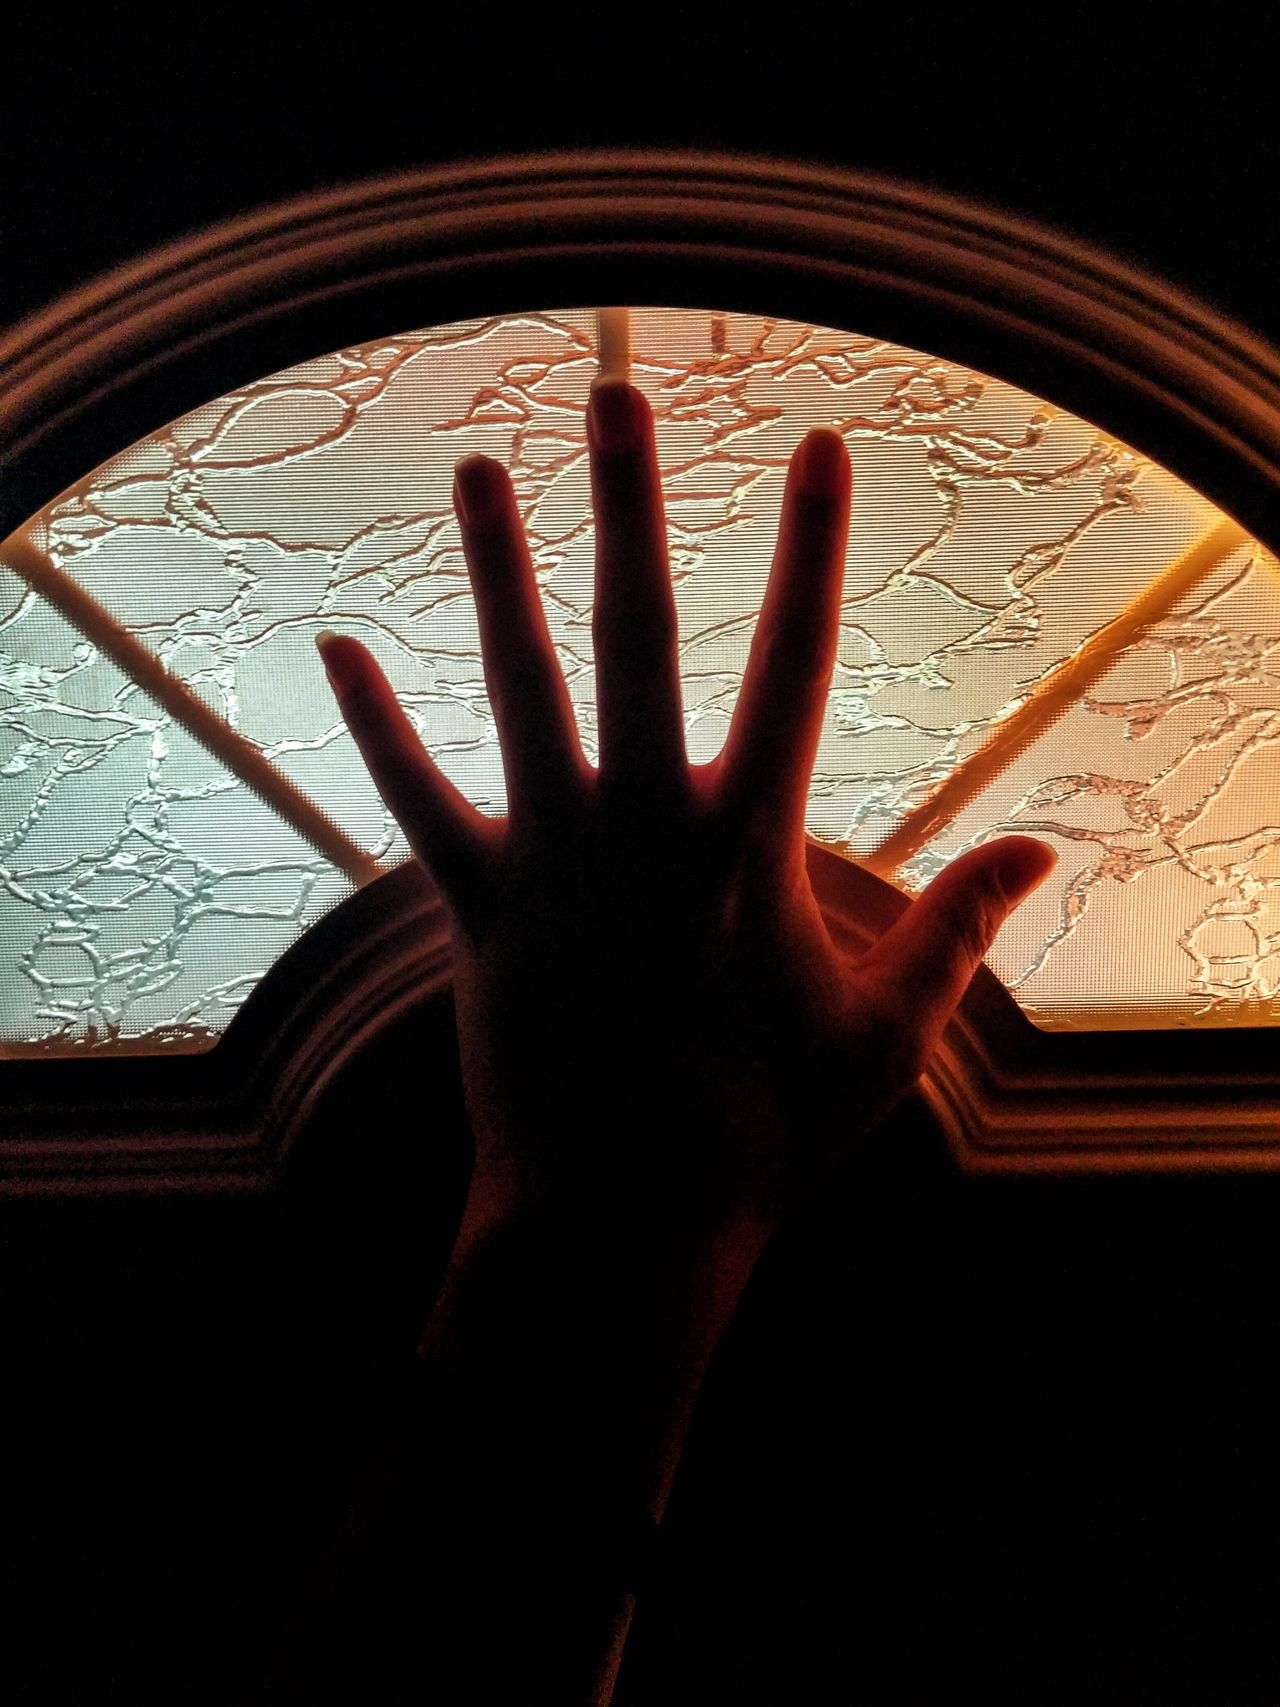 Close-up Dark Detail Door EyeEm Best Edits EyeEm Best Shots Gloving Gloving Light Illuminated Light And Shadow Sunrise Warm Colors Warm Photo Hand Reaching For The Sun Home Is Where The Art Is Color Palette EyeEmNewHere